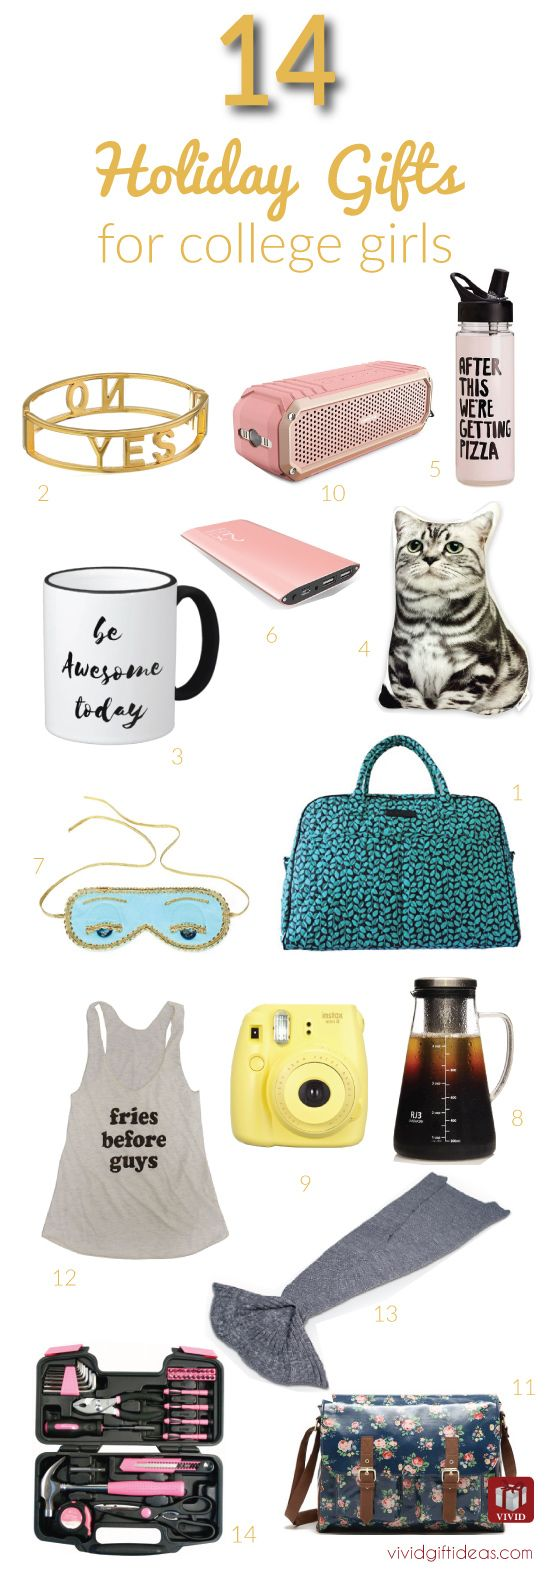 holiday gift ideas for college student 14 great christmas gifts for college girls - Christmas Ideas For College Students